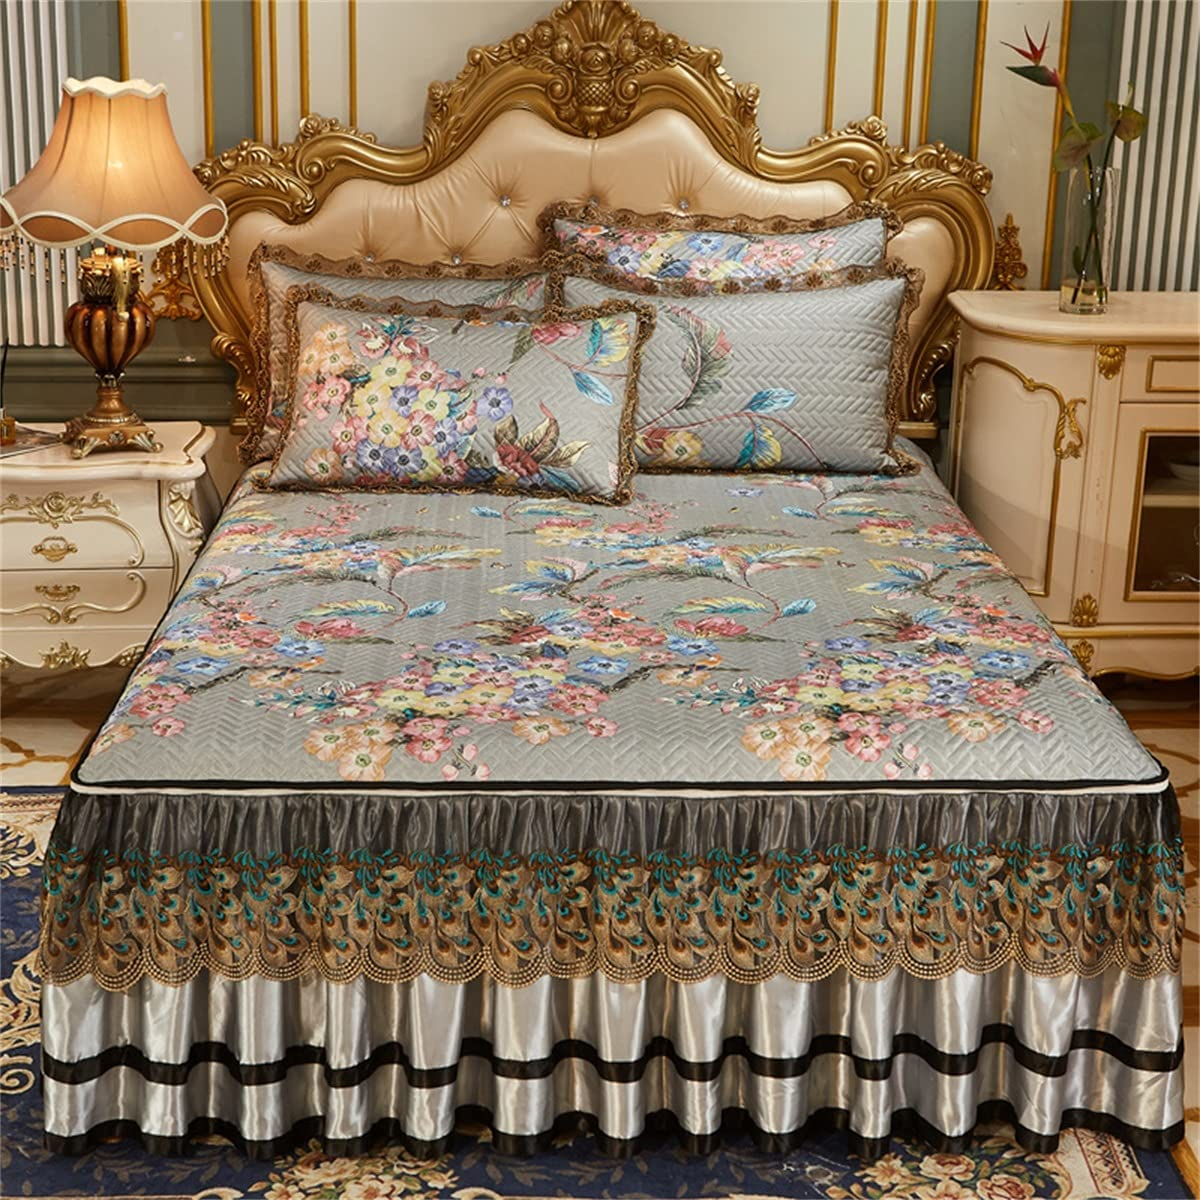 CHLDDHC Cheap sale 3-Piece Max 73% OFF Set Fitted Bed lace Skirt Gau Coverlet Bedspread